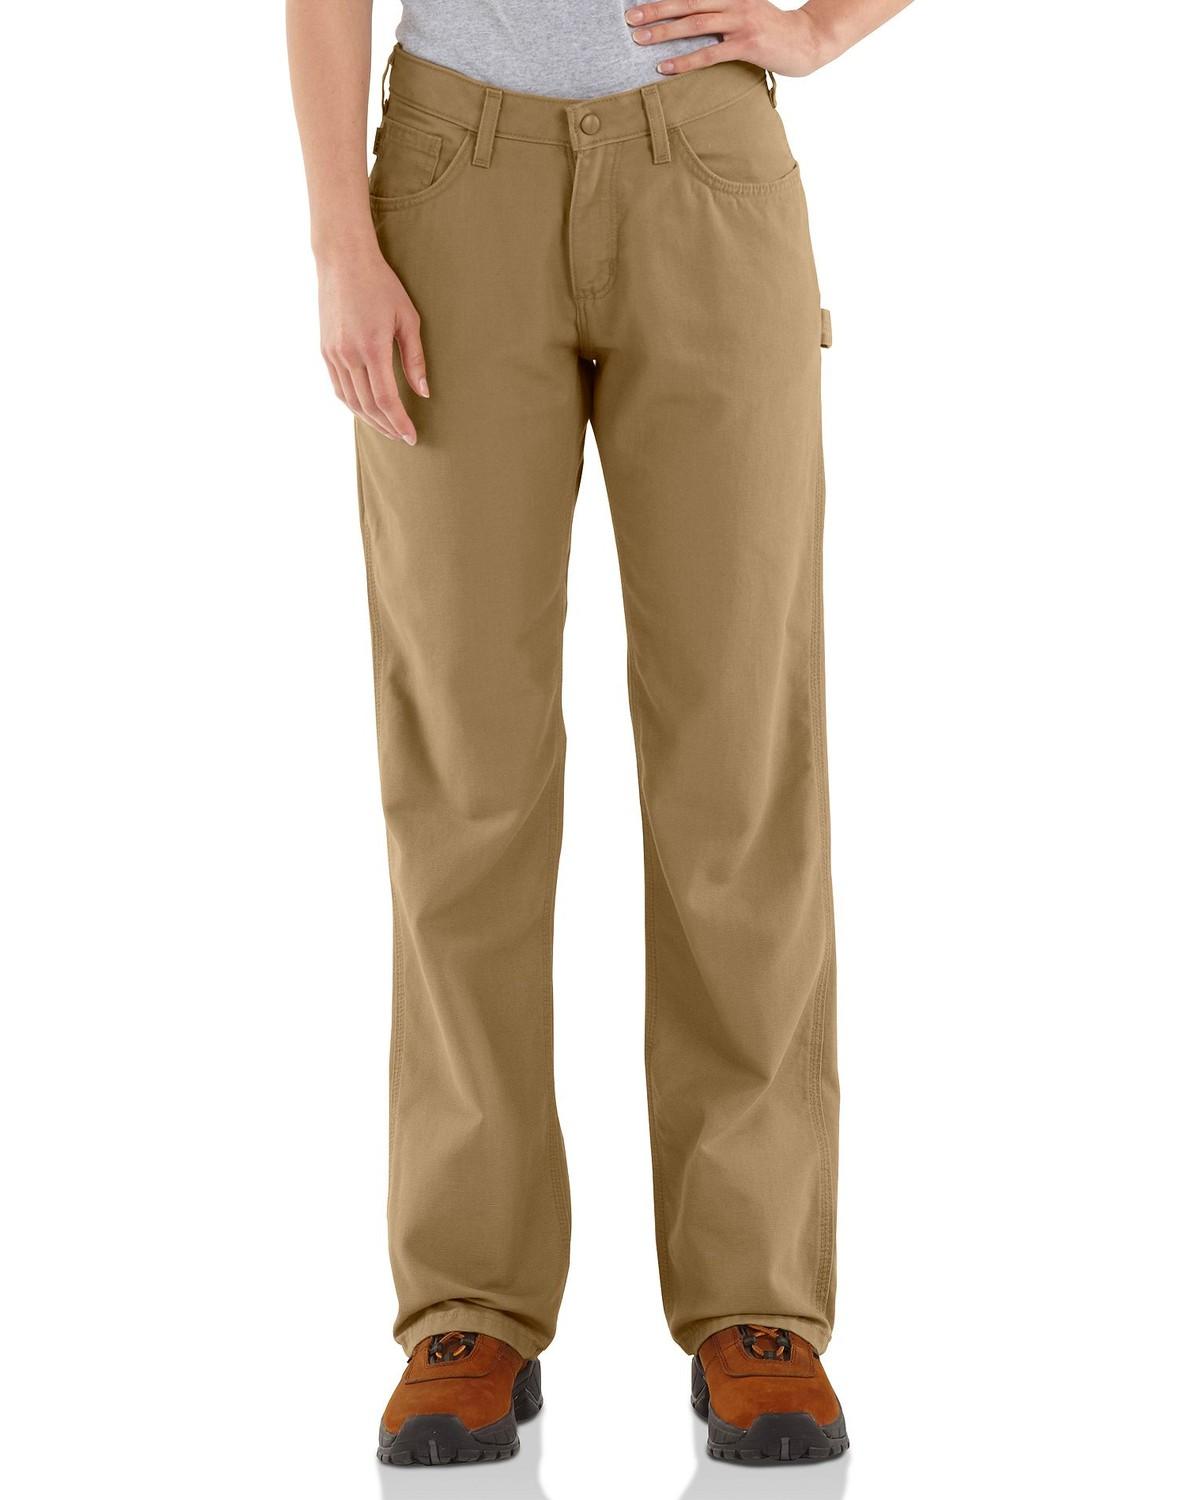 Carhartt Flame Resistant Canvas Work Pants - 28